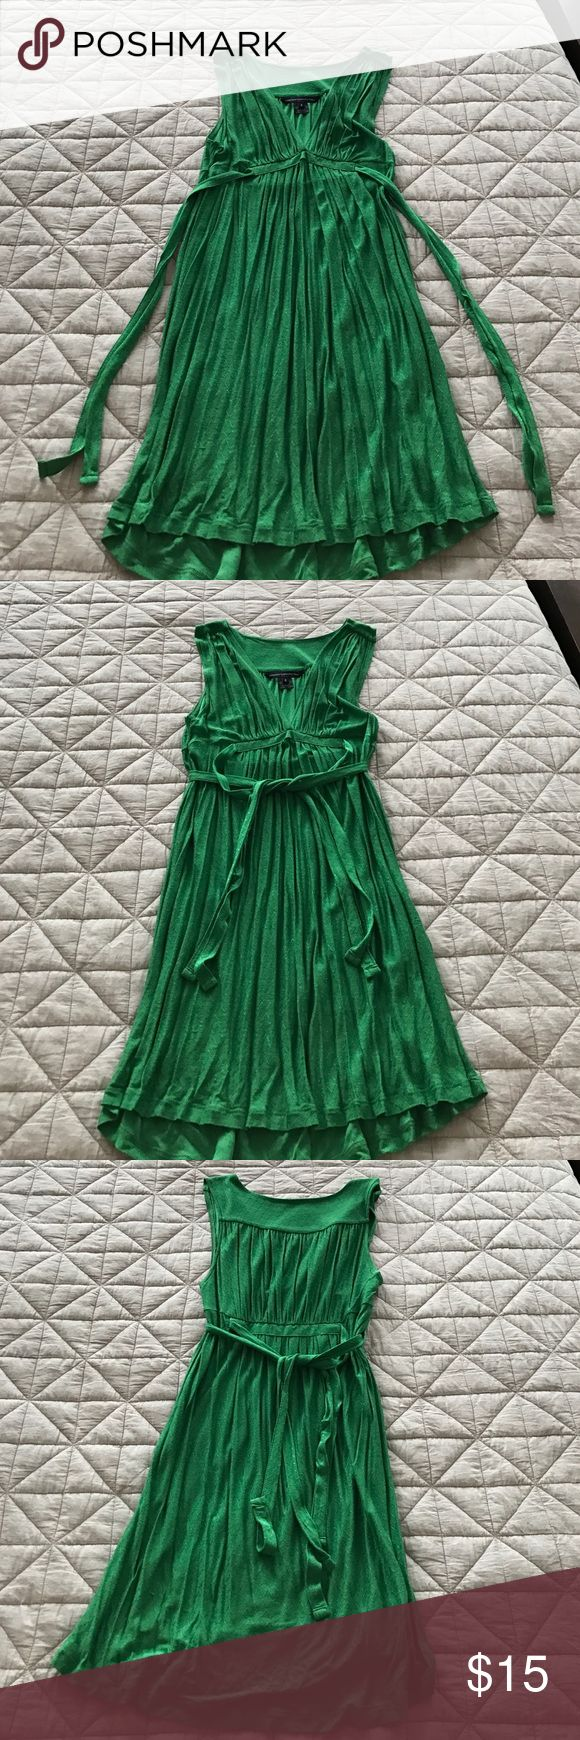 French Connection Empire Waist V-Neck Dress Beautiful vibrant green plunging v-neck dress by French Connection. Double tie on sides allow for tying in front back or sides. Drapey fit makes this a flattering and easy dress to wear. Perfect for any occasion. Can be worn alone or with tights or leggings. Good condition. French Connection Dresses